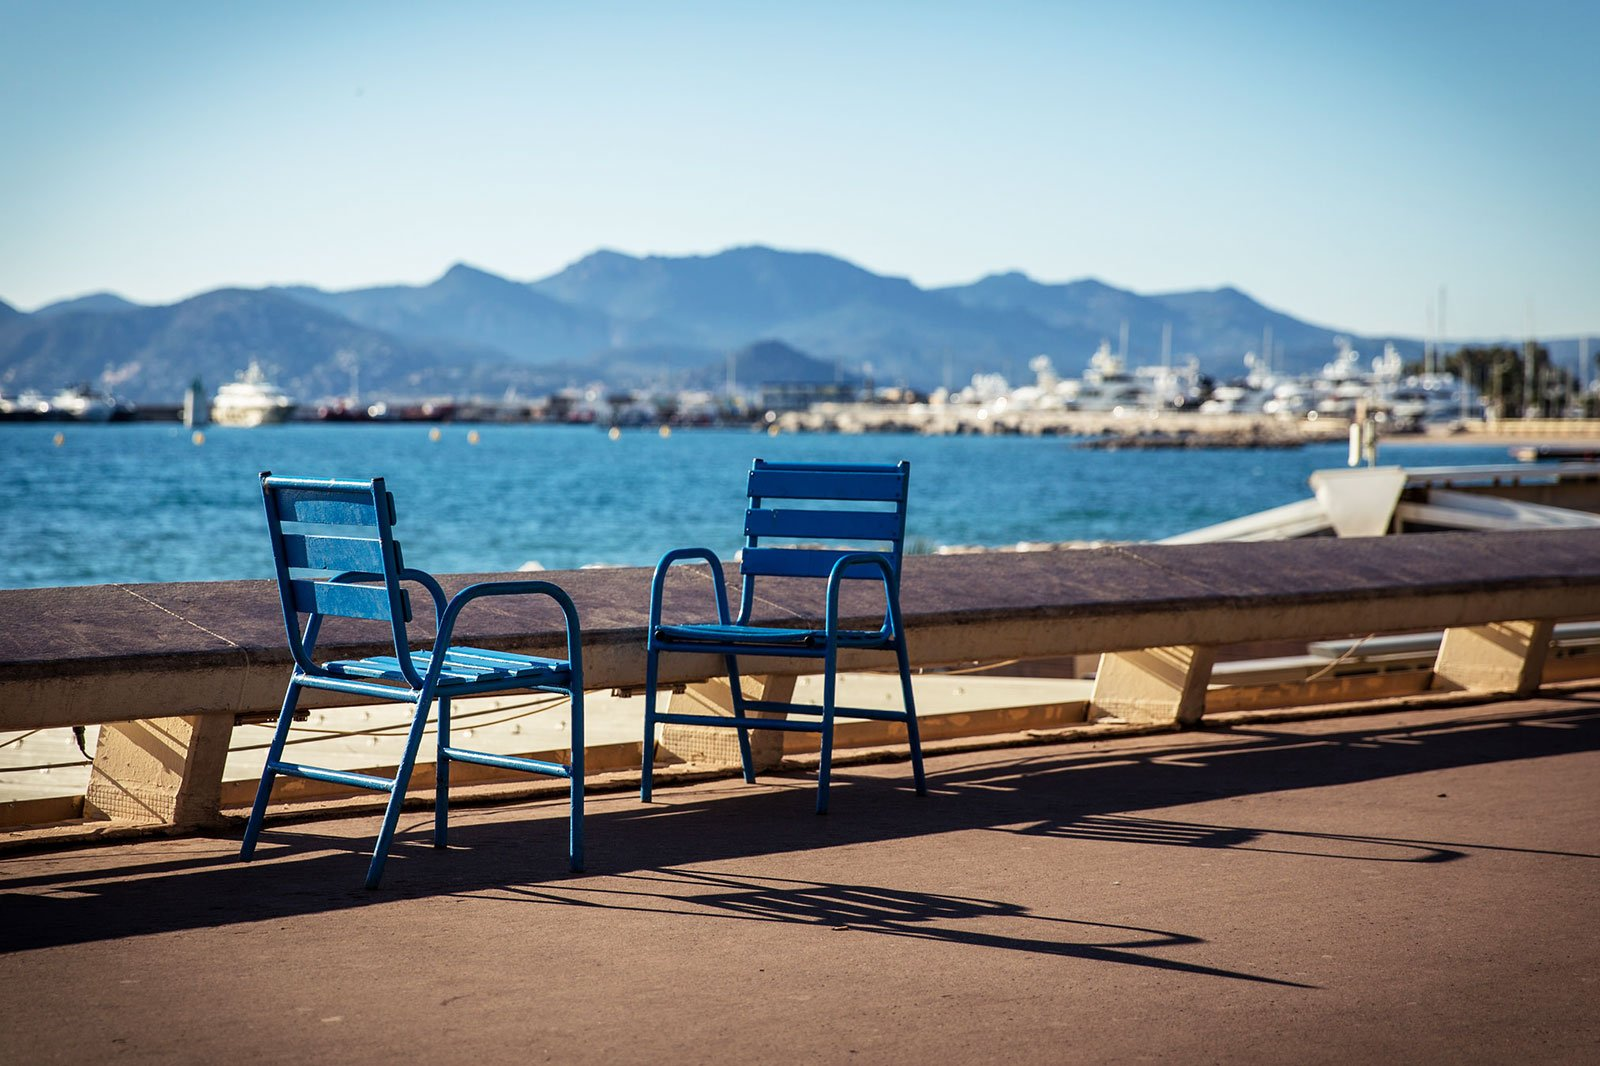 How to have a rest in the blue chair on the Promenade de la Croisette in Cannes